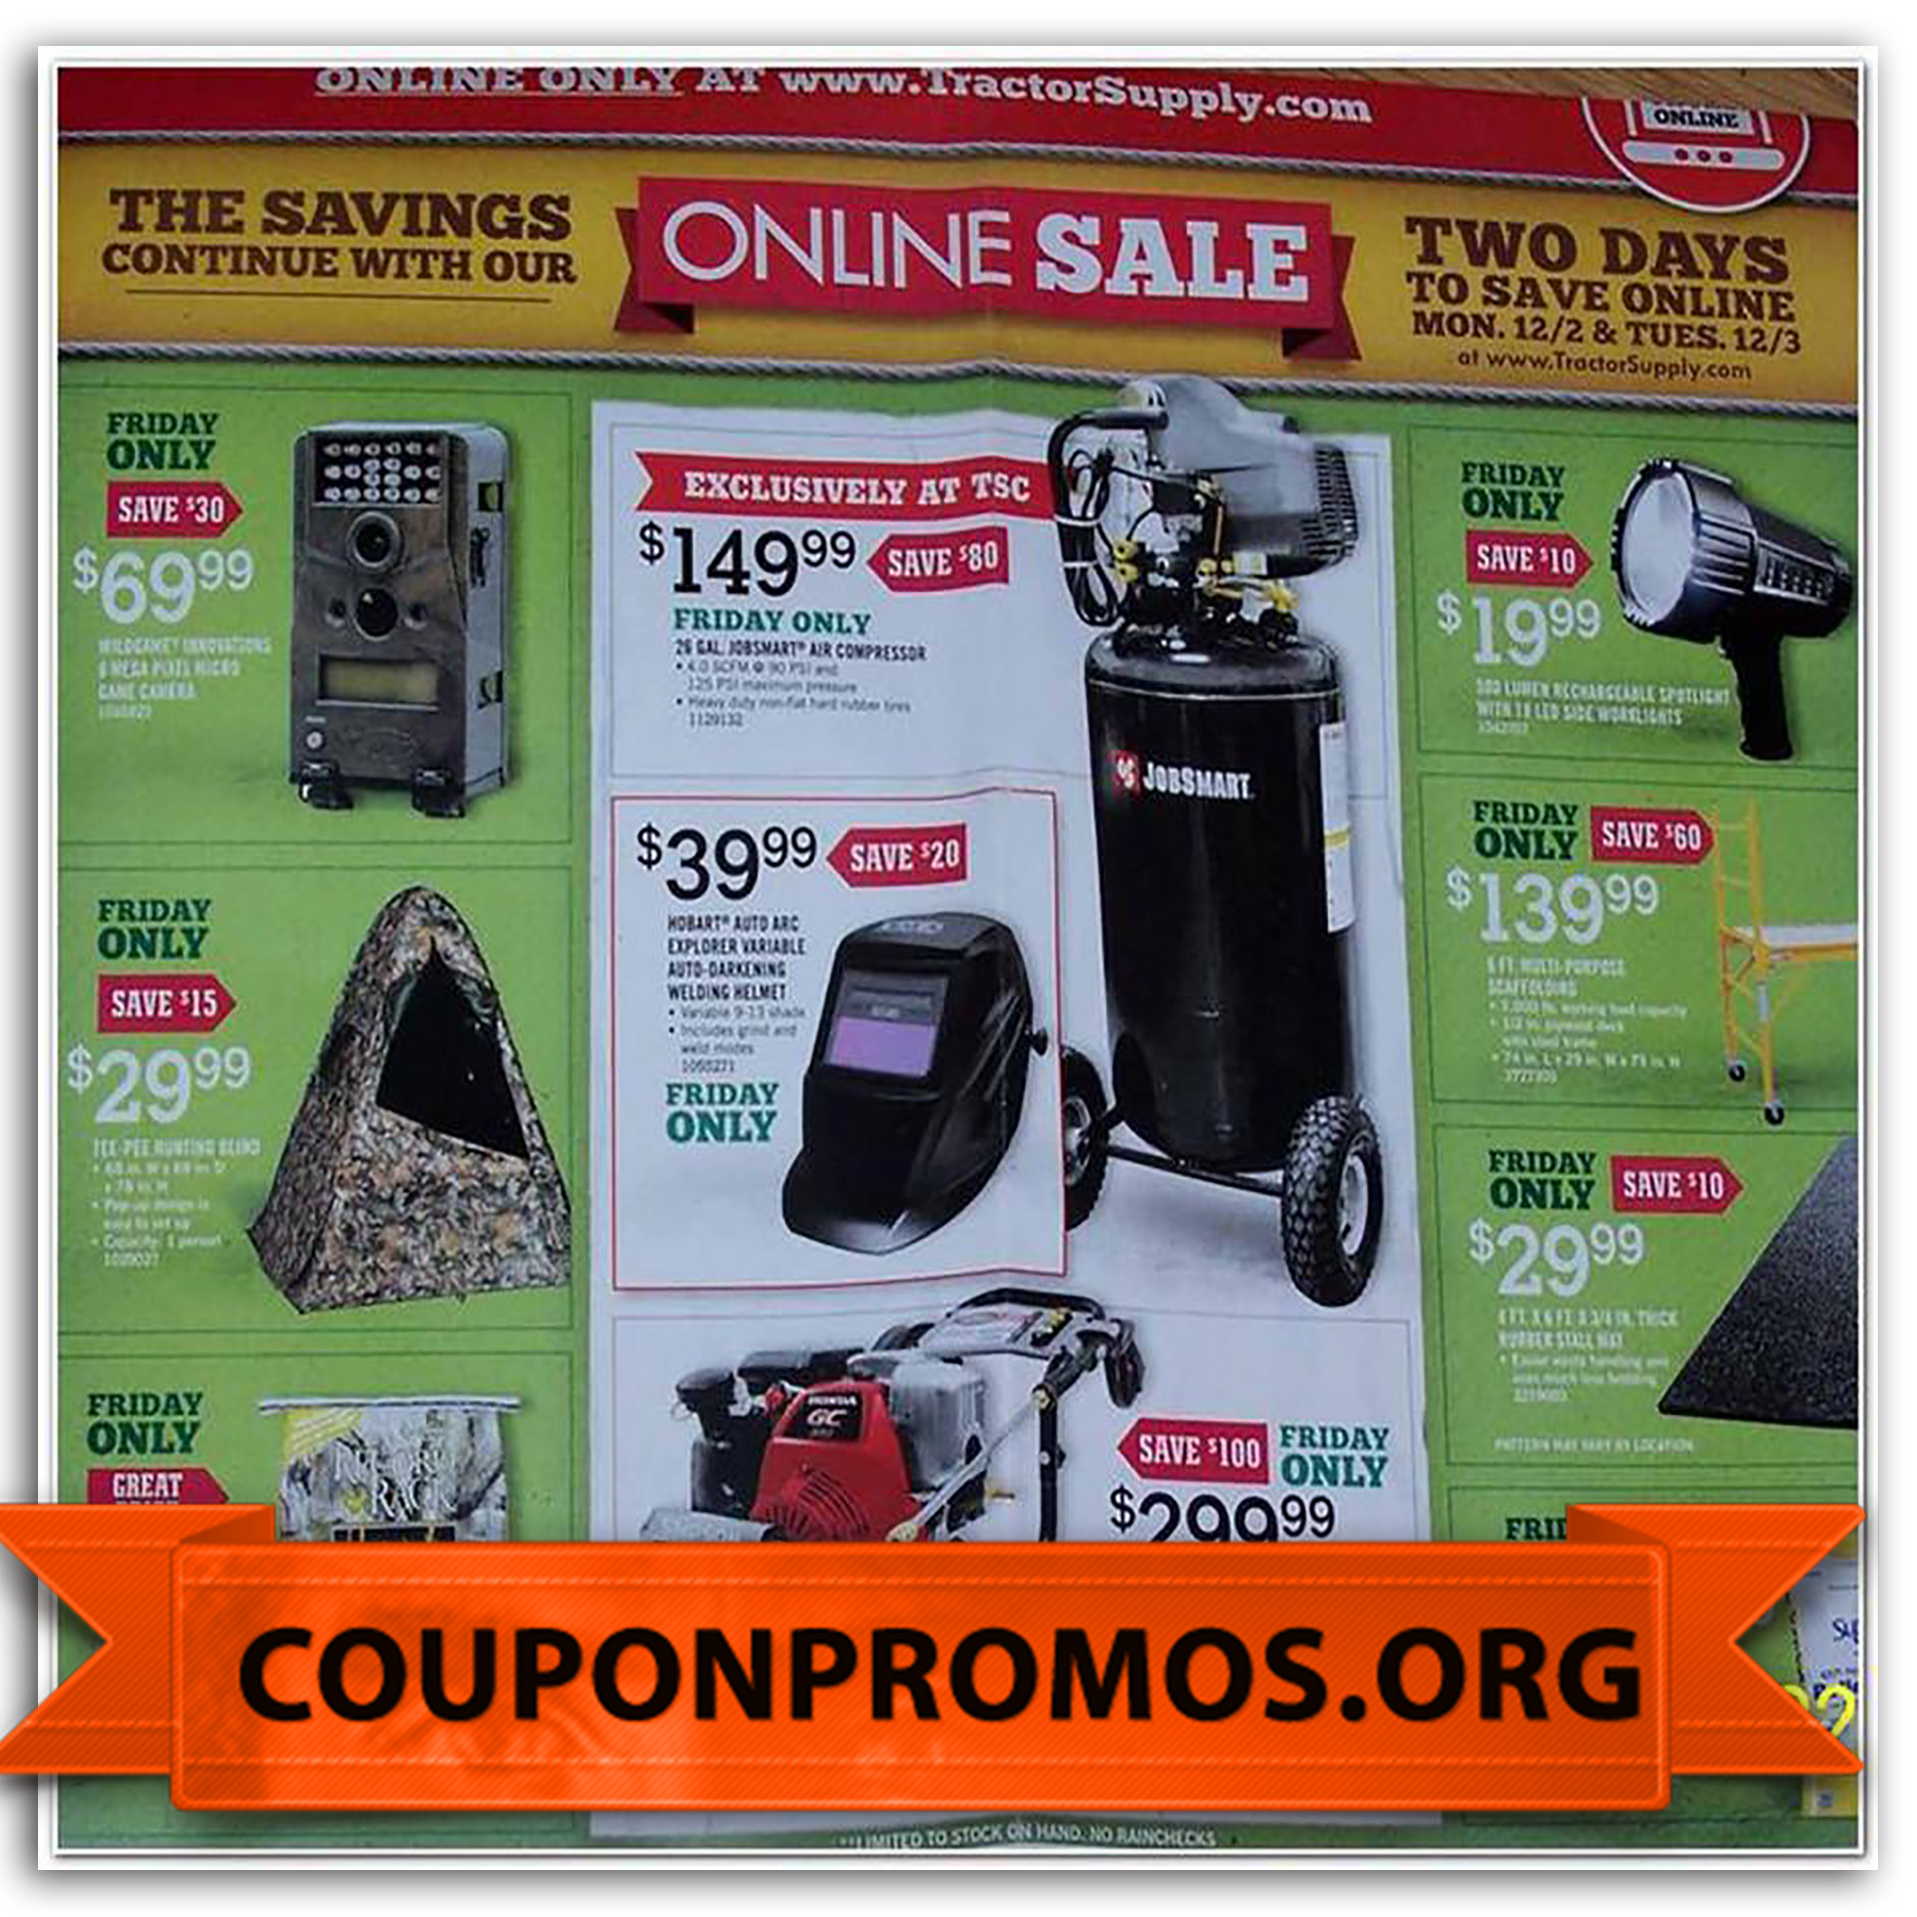 photograph relating to Printable Tractor Supply Coupon called 48+] Within Wallpaper Coupon Code upon WallpaperSafari